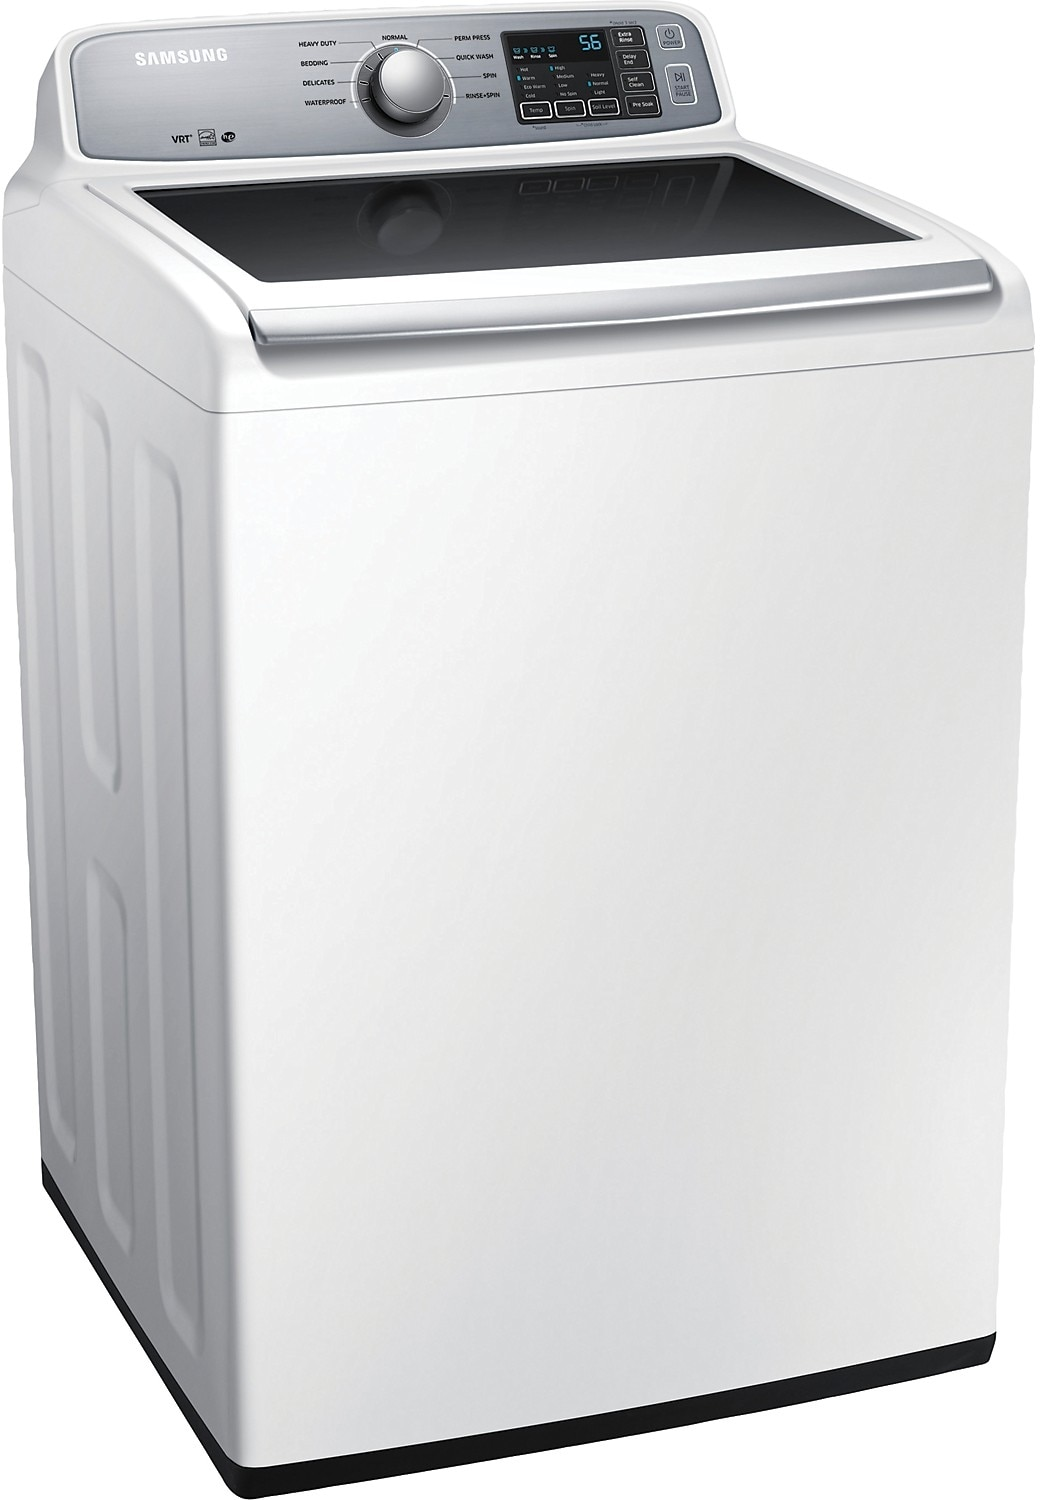 Samsung 5 2 Cu Ft Large Capacity Top Load Washer White